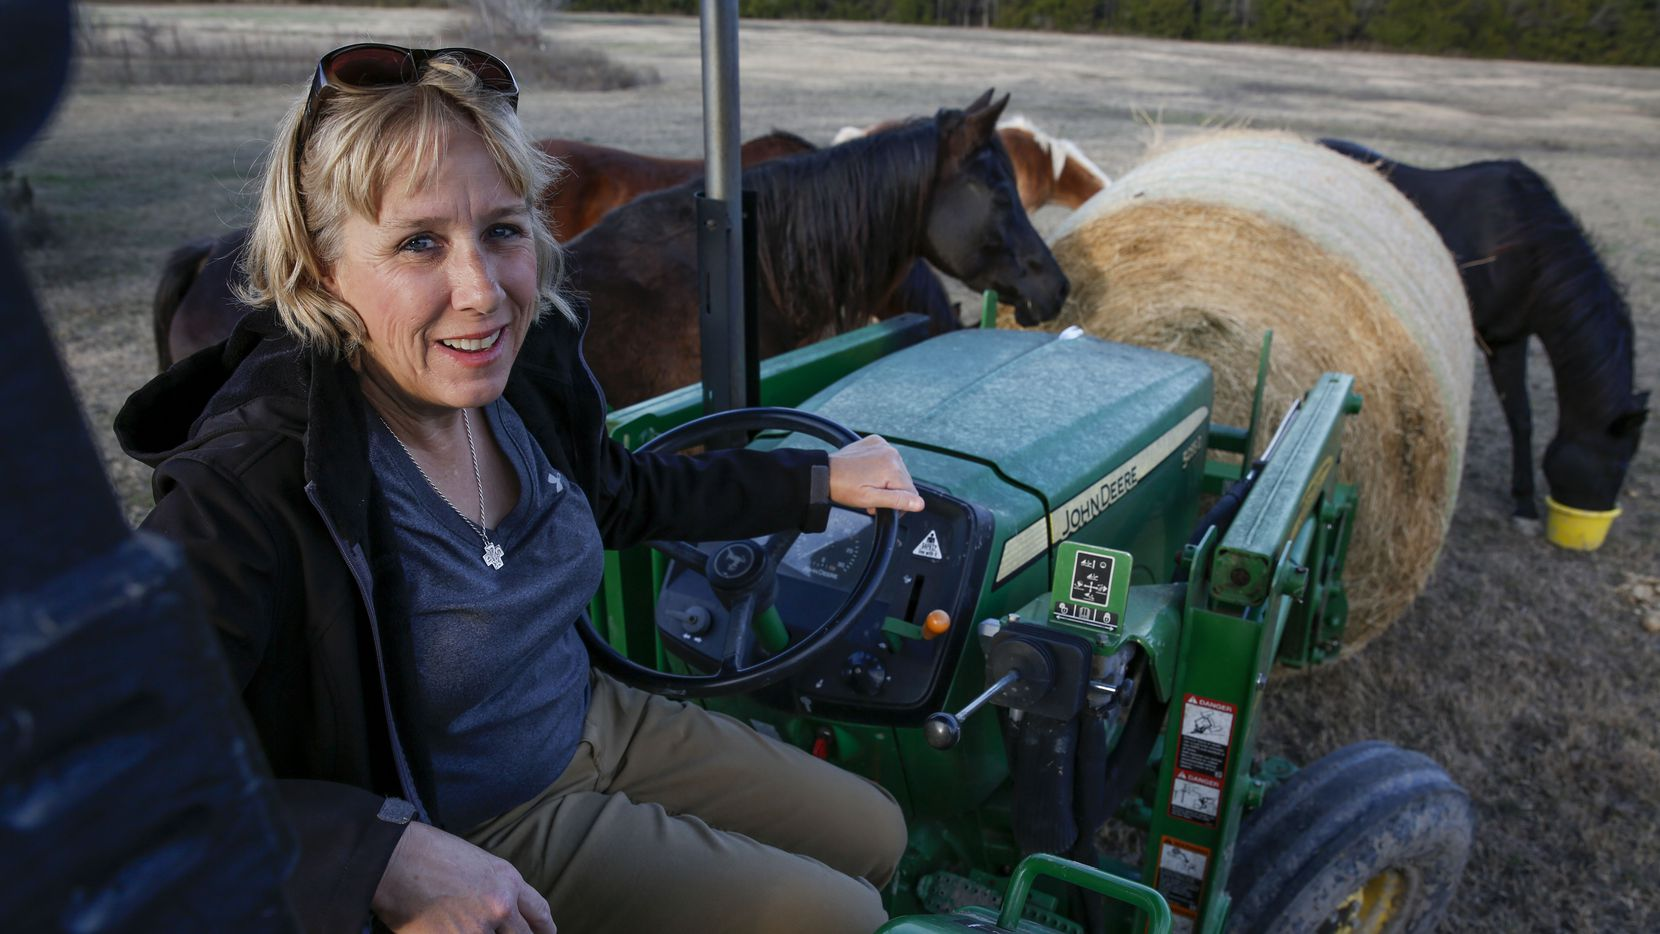 Brenda Rizos poses while moving a bale of hay around with a tractor surrounded by horses on her property in Lucas, Texas. Brenda, parent activist in Lovejoy ISD, has won a huge case against the district with the Texas Ethics Commission.